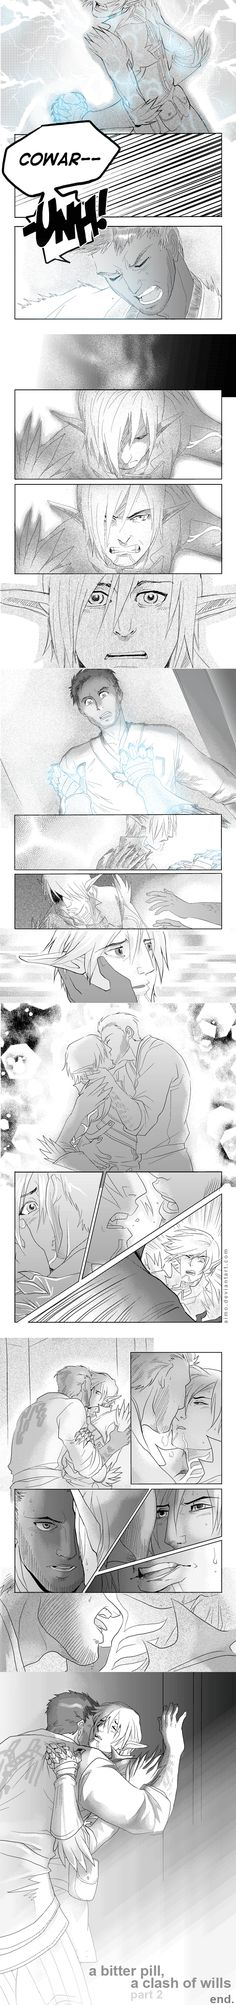 DA2 - A Clash of Wills 2 by aimo on DeviantArt | Fenris and Hawke